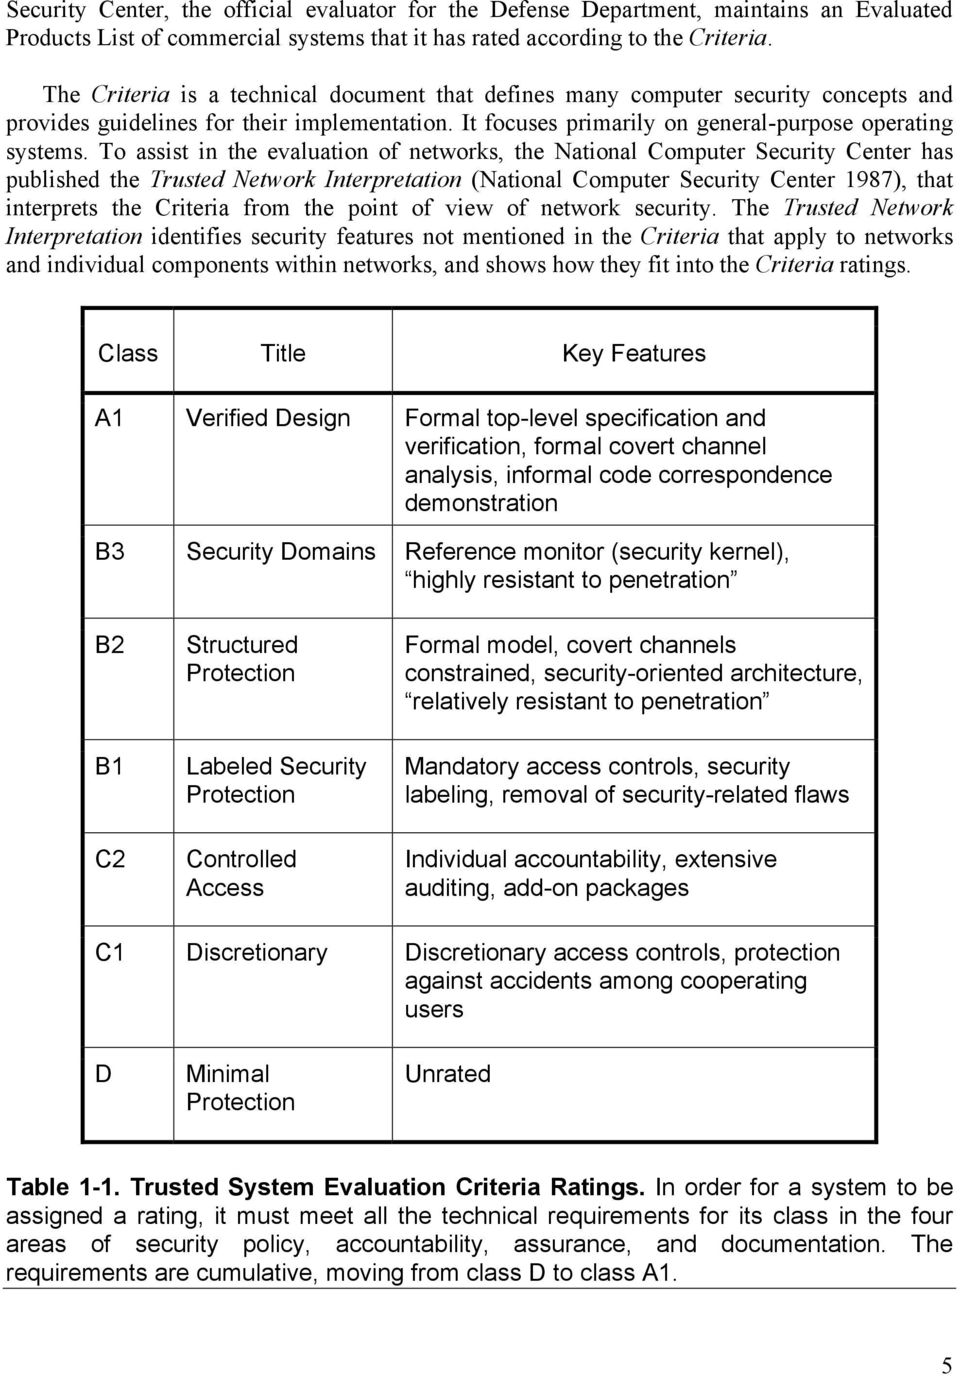 To assist in the evaluation of networks, the National Computer Security Center has published the Trusted Network Interpretation (National Computer Security Center 1987), that interprets the Criteria